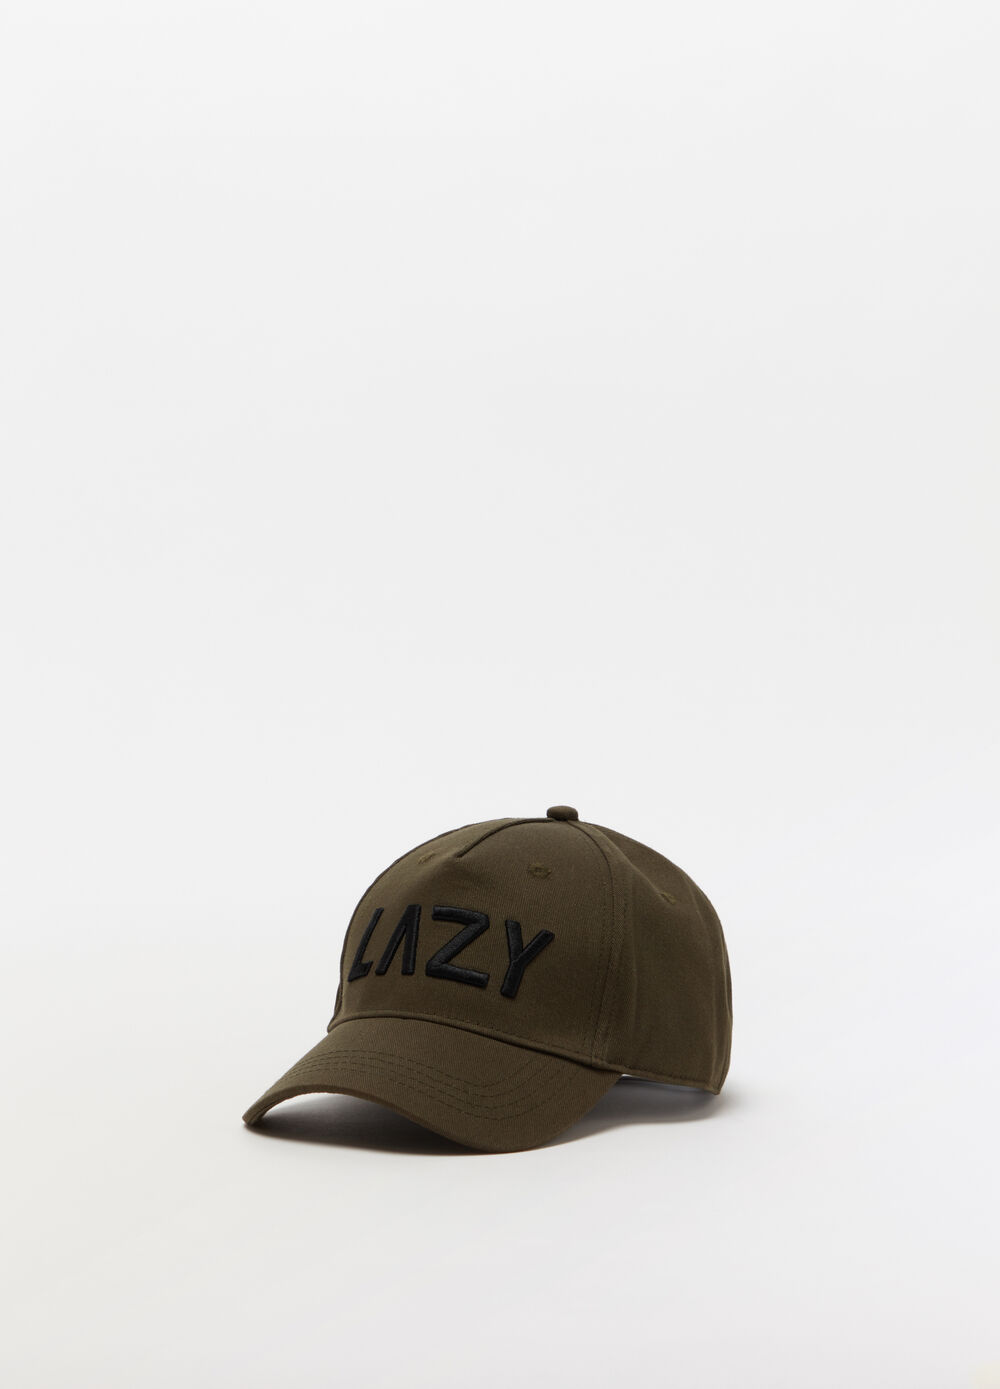 Baseball cap with 3D embroidery and buckle